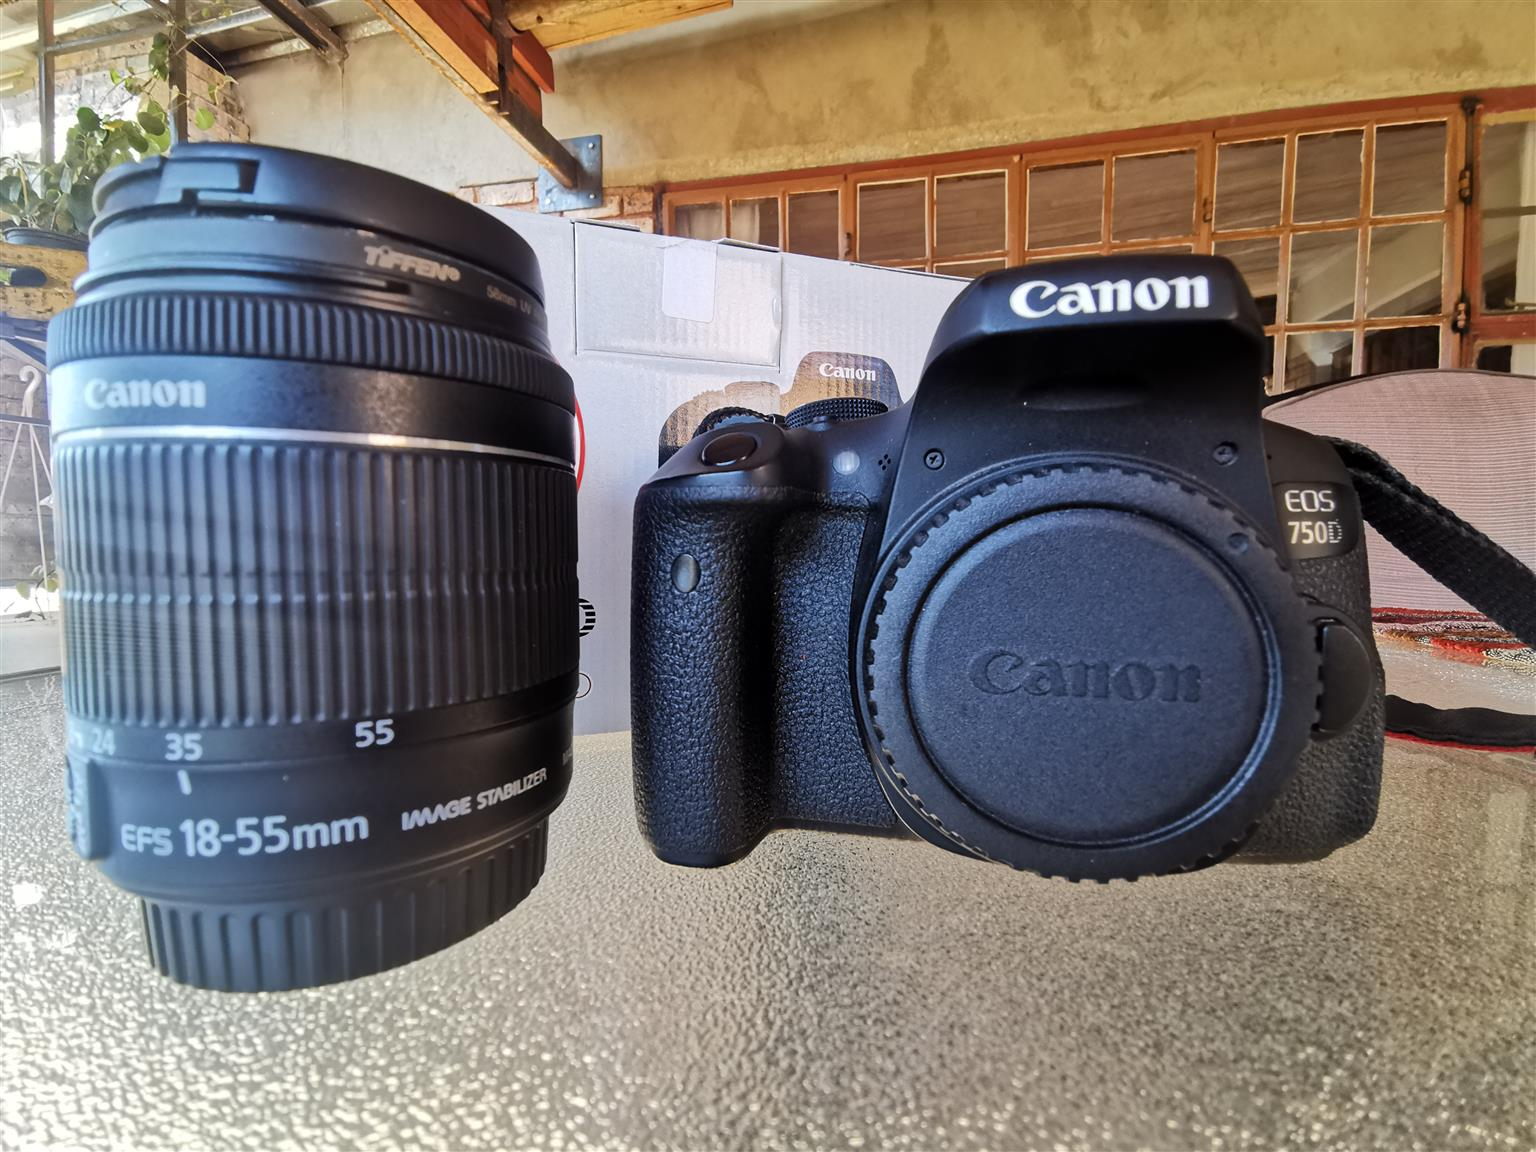 750D Canon and Lenses